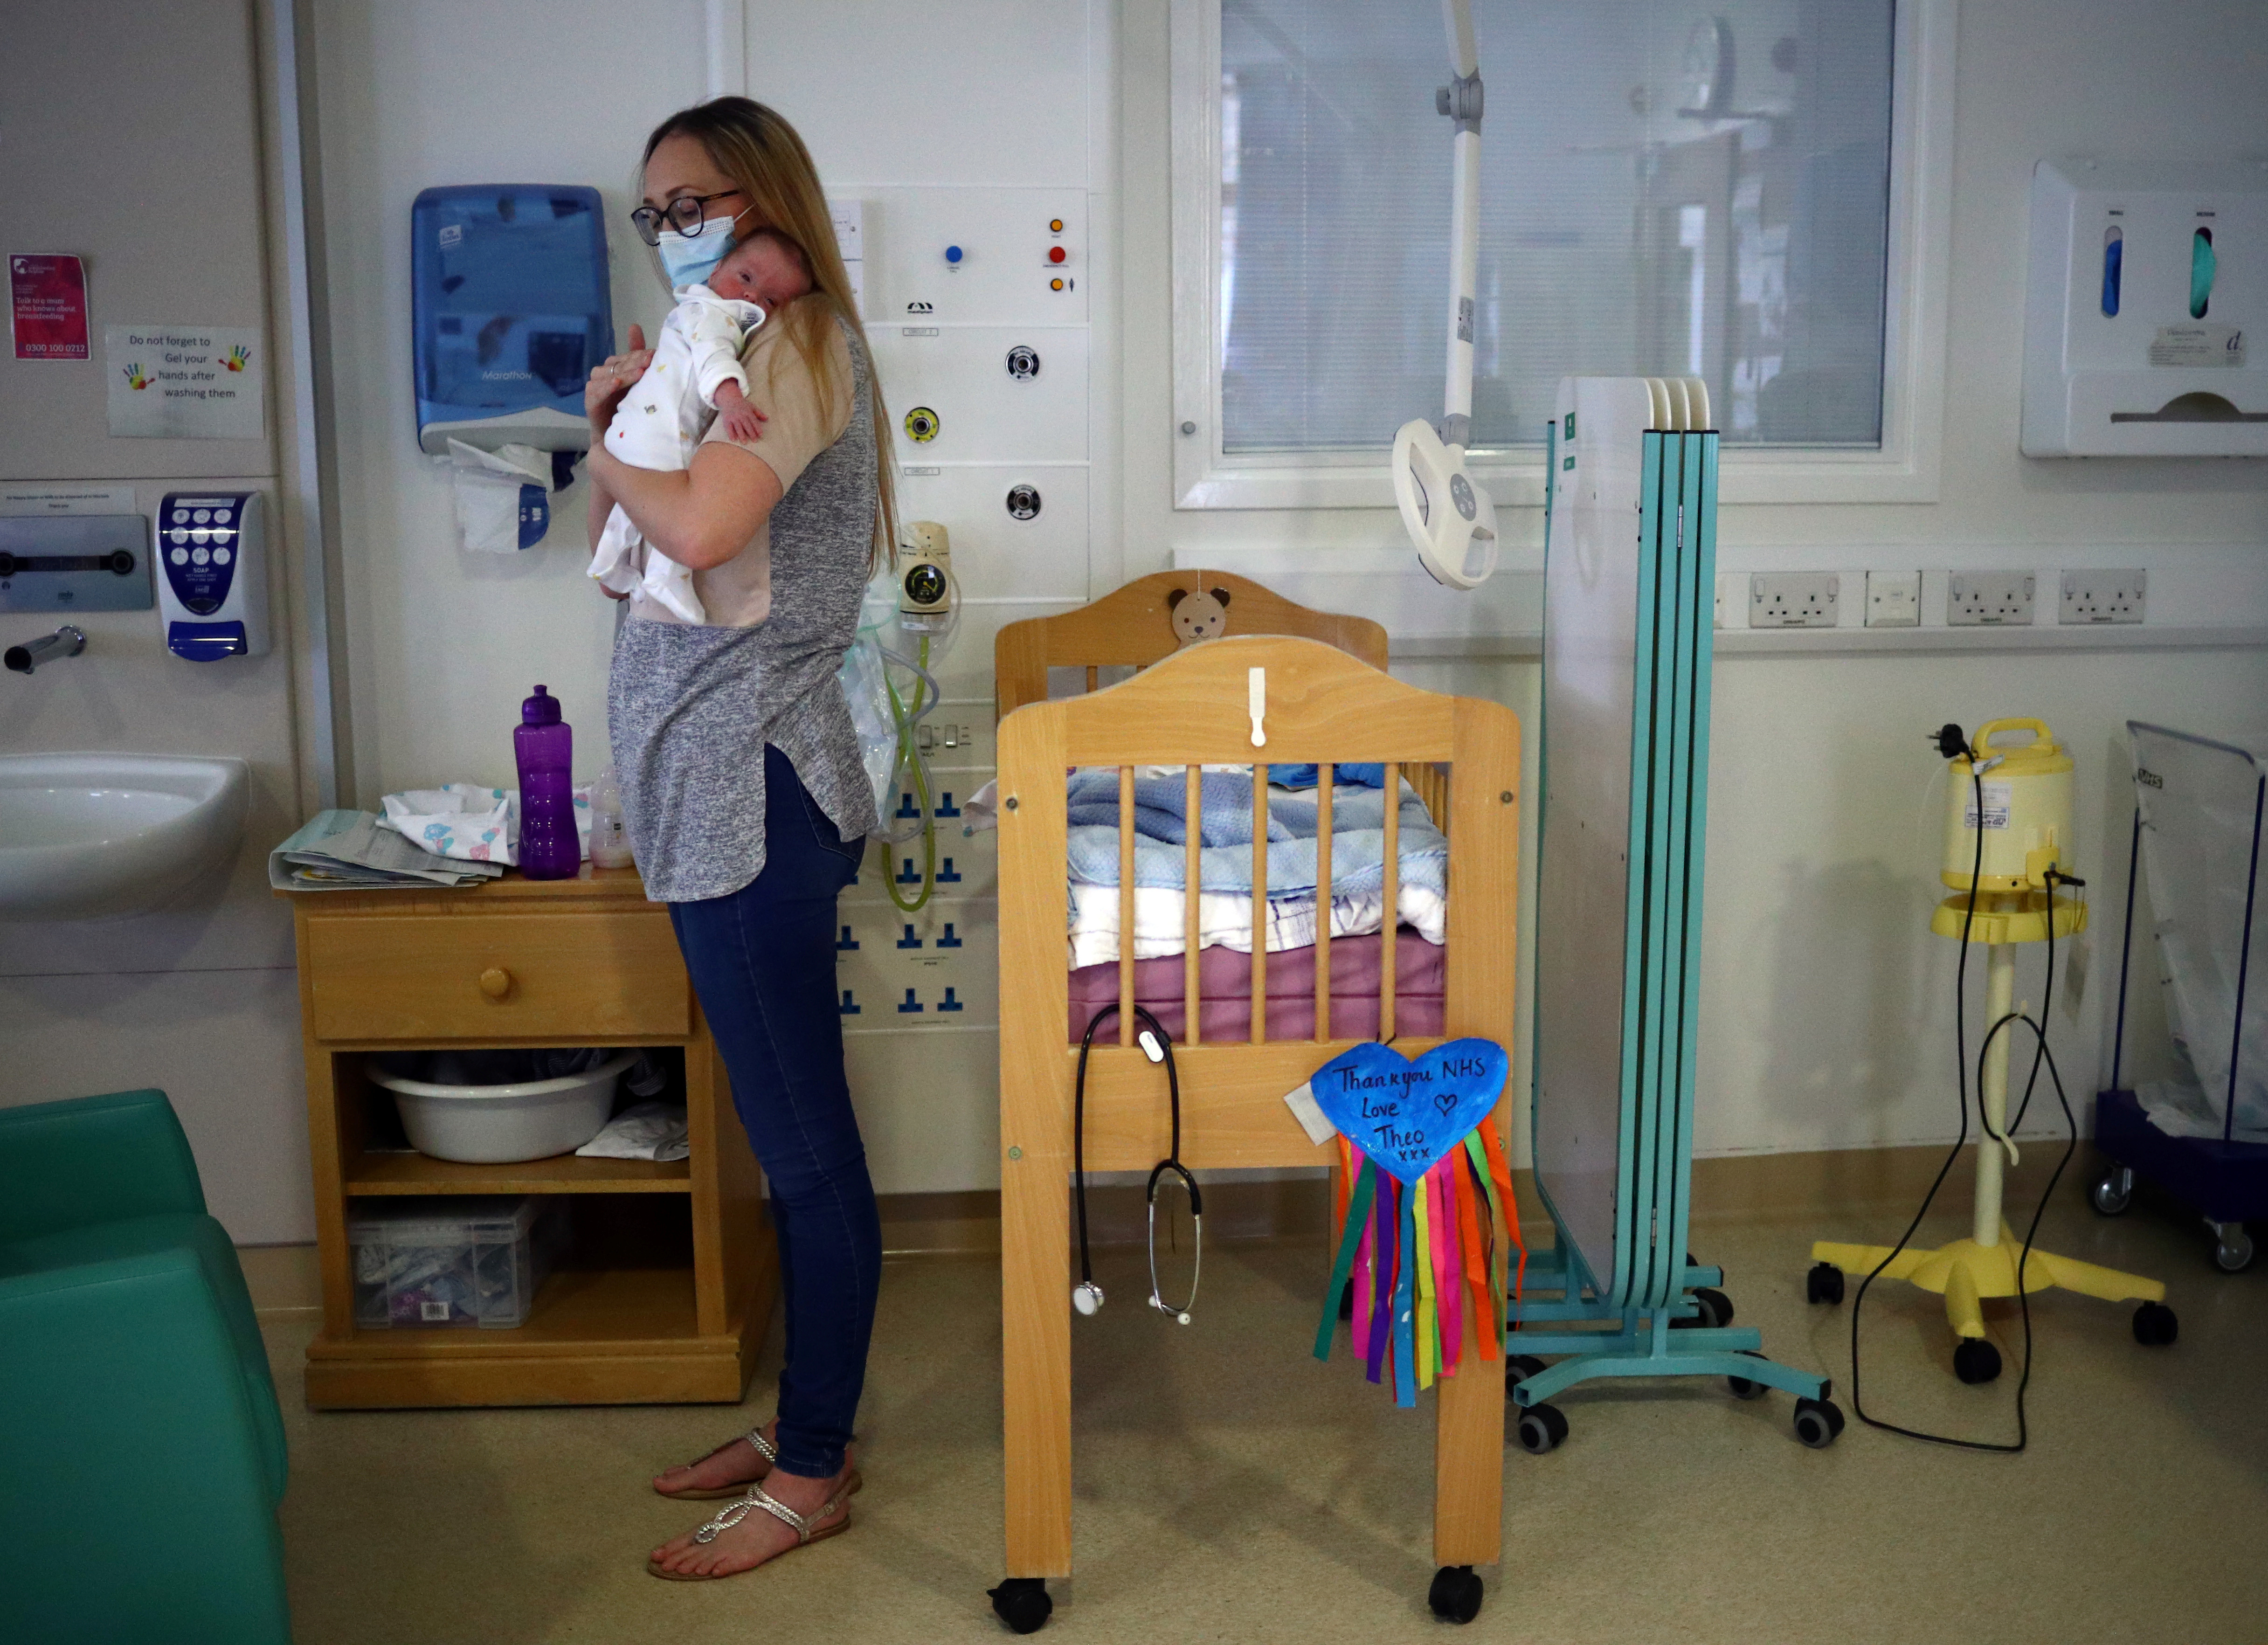 Kirsty Anderson holds her baby Theo, who was born prematurely and is now nine weeks old, as they wait for medical staff to discharge him from hospital in the Lancashire Women and Newborn Centre of Burnley General Hospital in East Lancashire, following the spread of the coronavirus disease (COVID-19) in Burnley, Britain, June 22, 2020. Picture taken June 22, 2020. REUTERS/Hannah McKay - RC2KFH9AI8TW